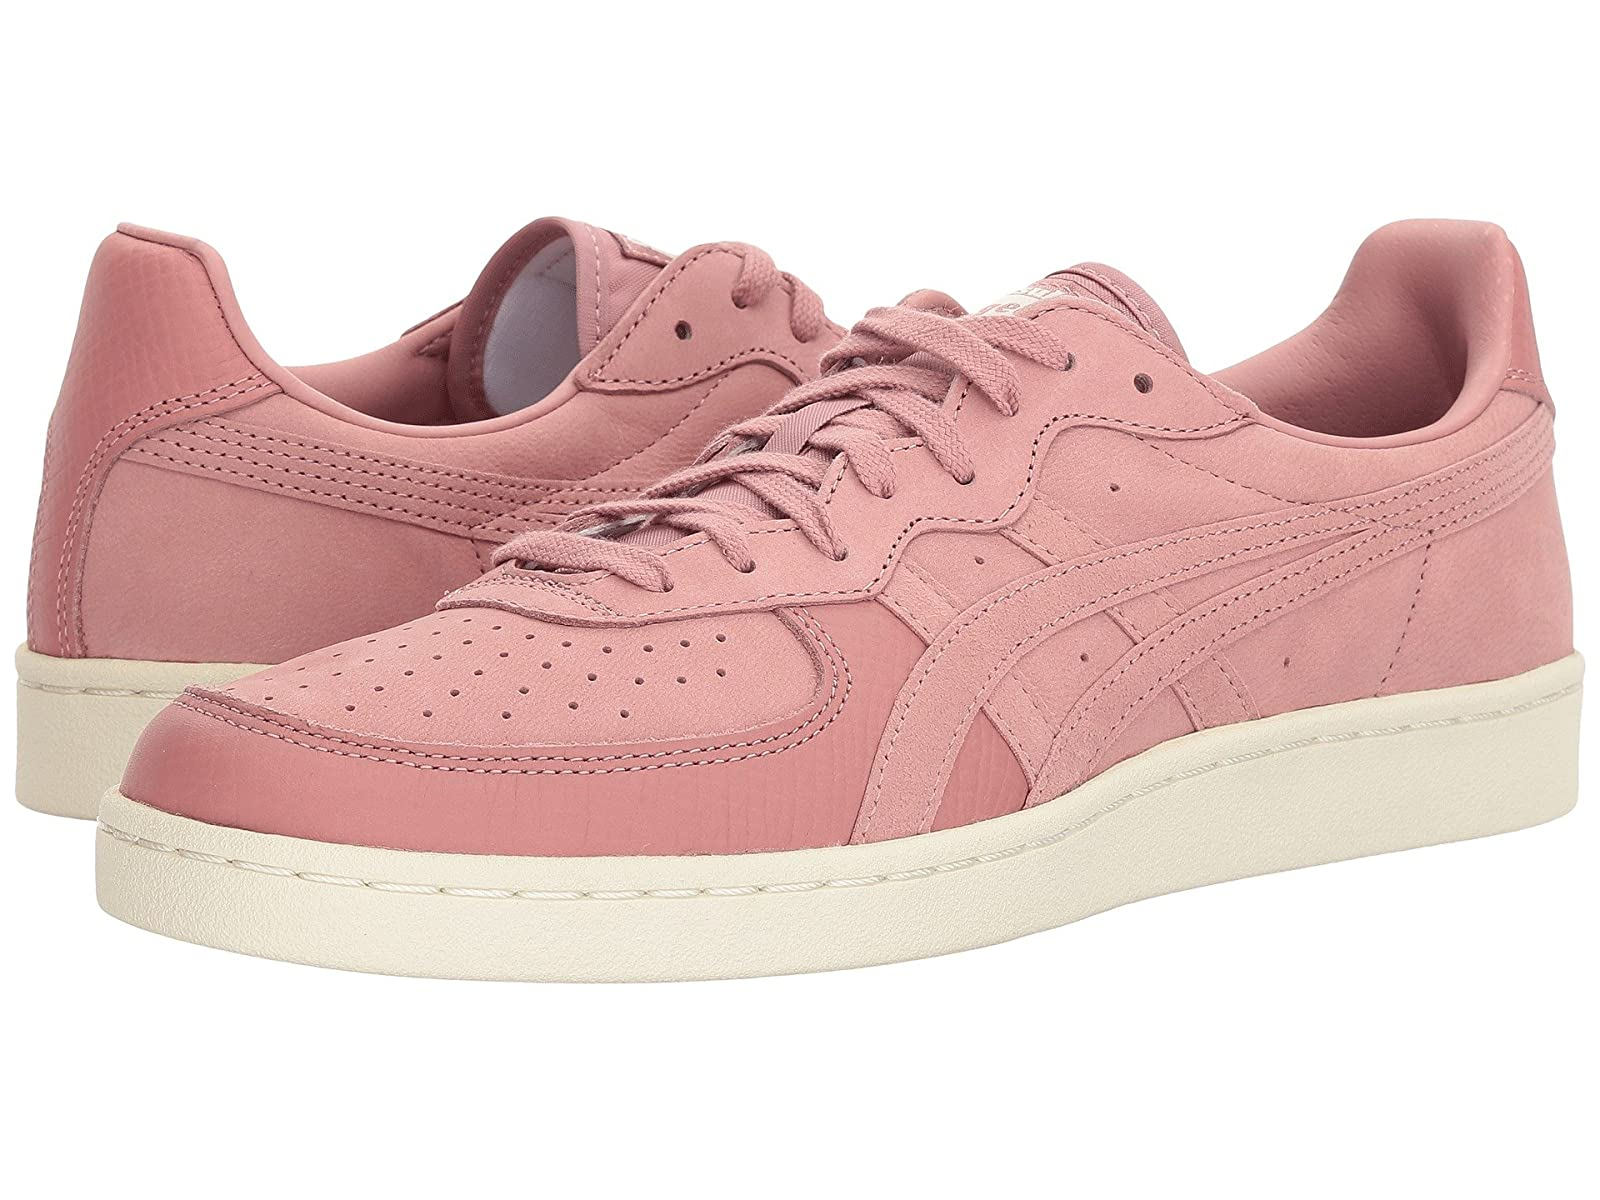 Onitsuka Tiger by Asics GSMAtmospheric grades have affordable shoes